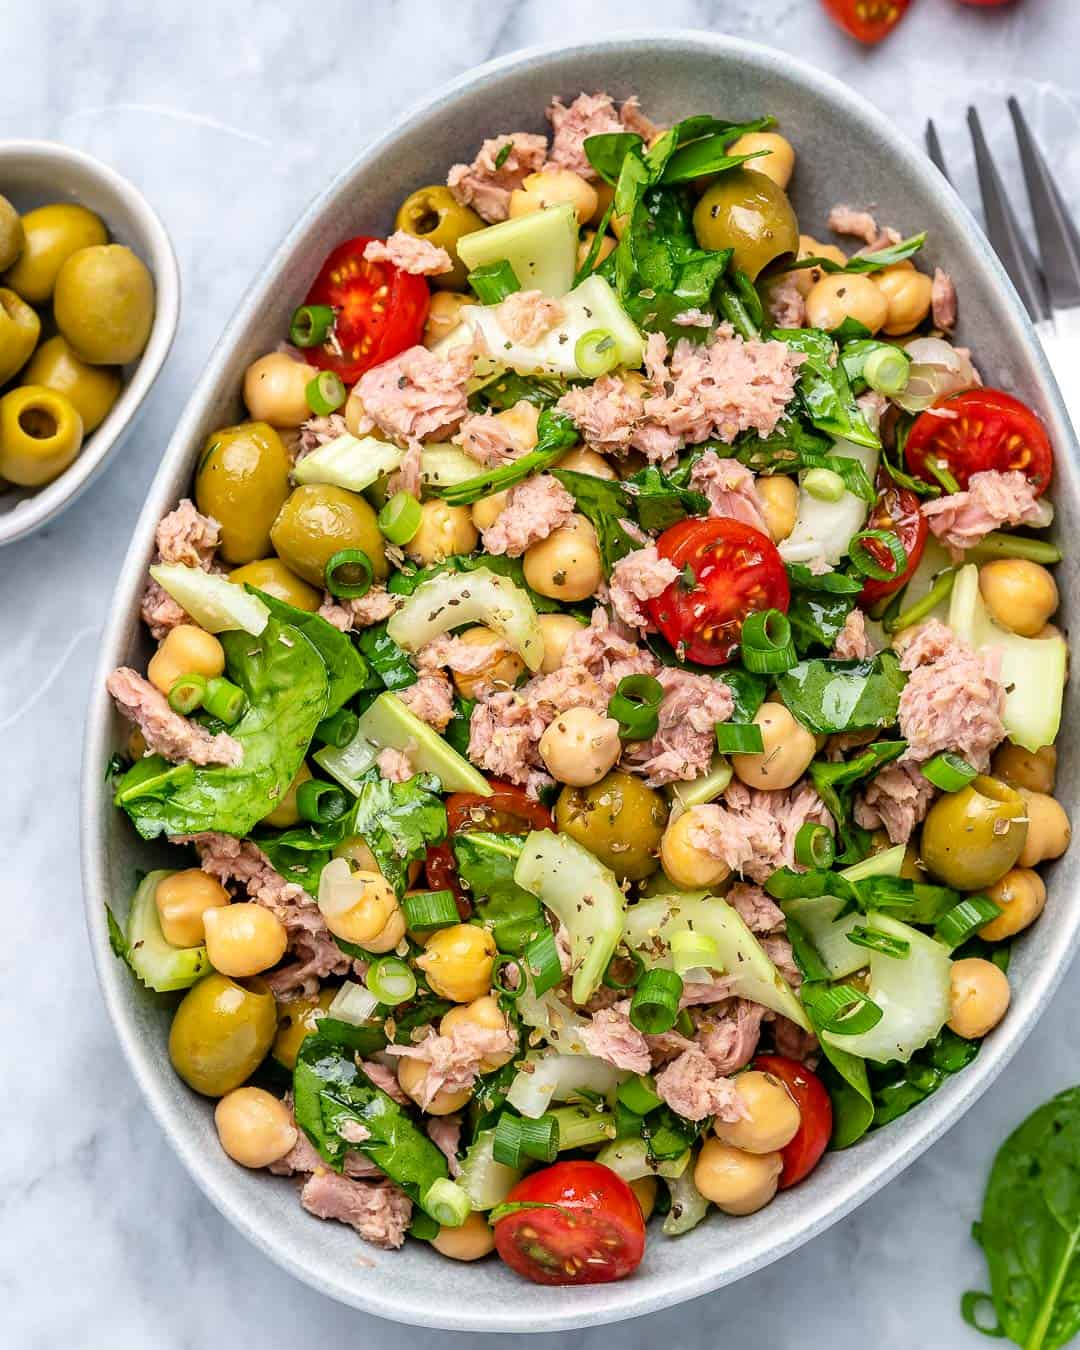 Delicious Chickpea Tuna Salad Recipe Healthy Fitness Meals